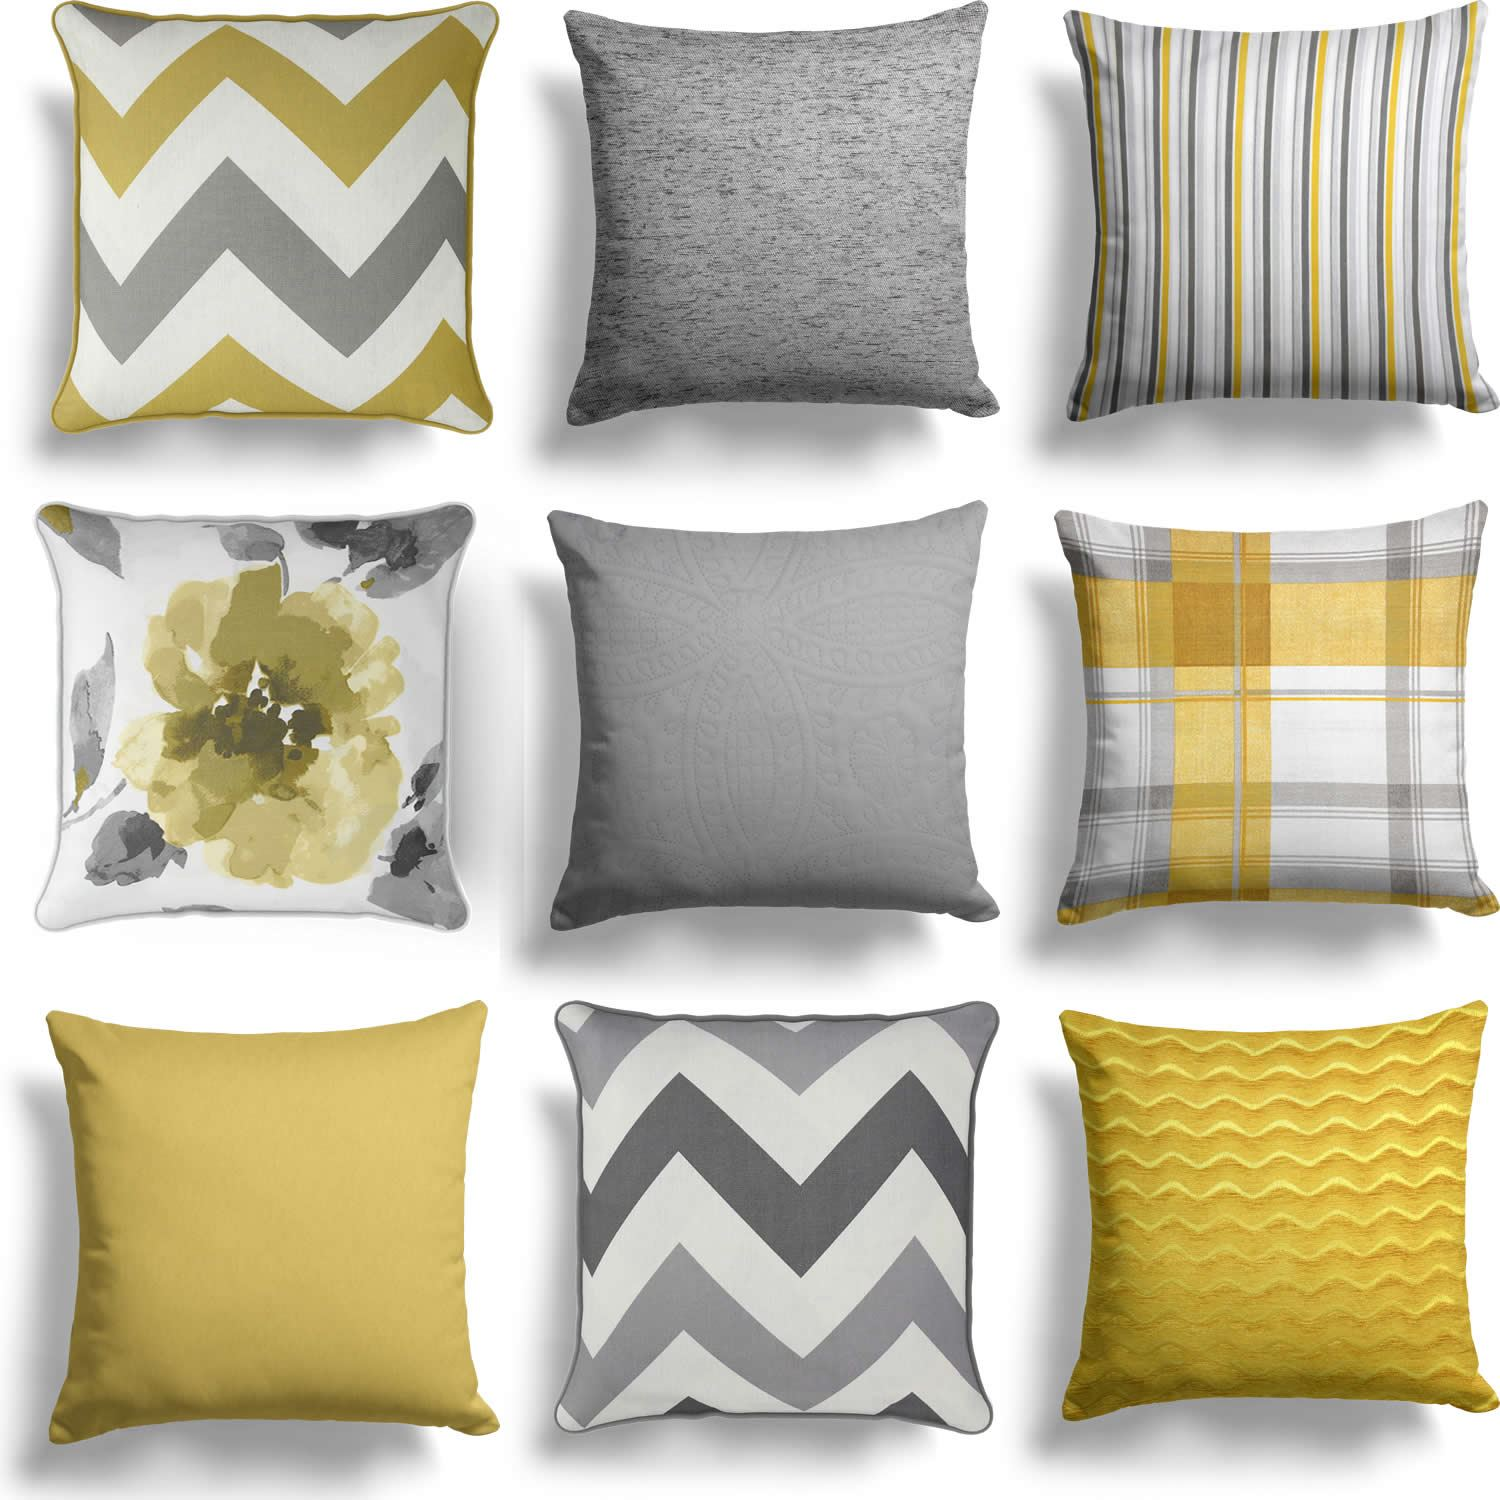 Ochre Mustard Yellow Grey Cushion Cover Collection 17